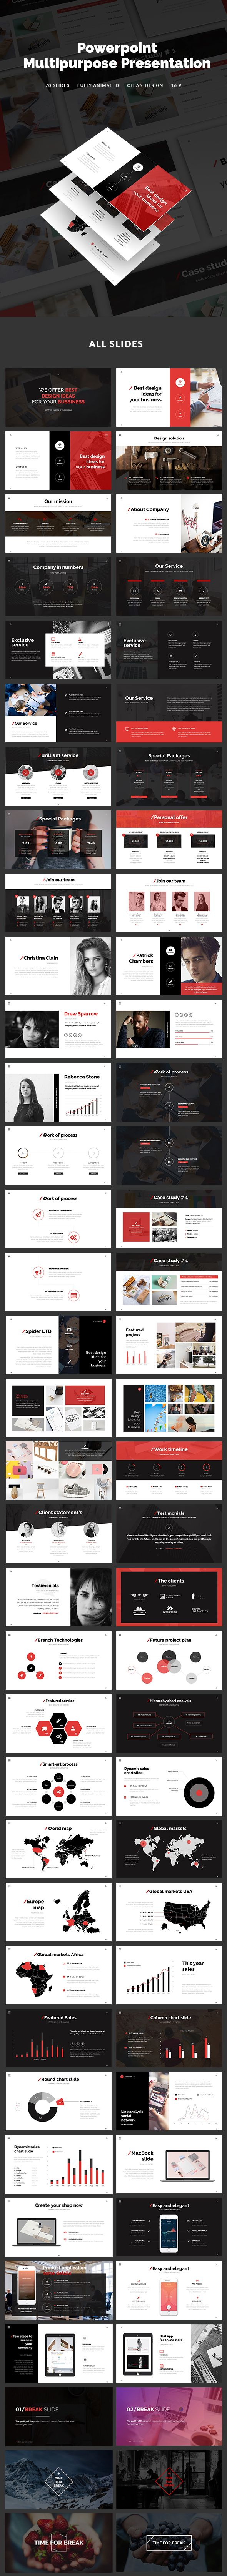 Company PowerPoint Presentation Template